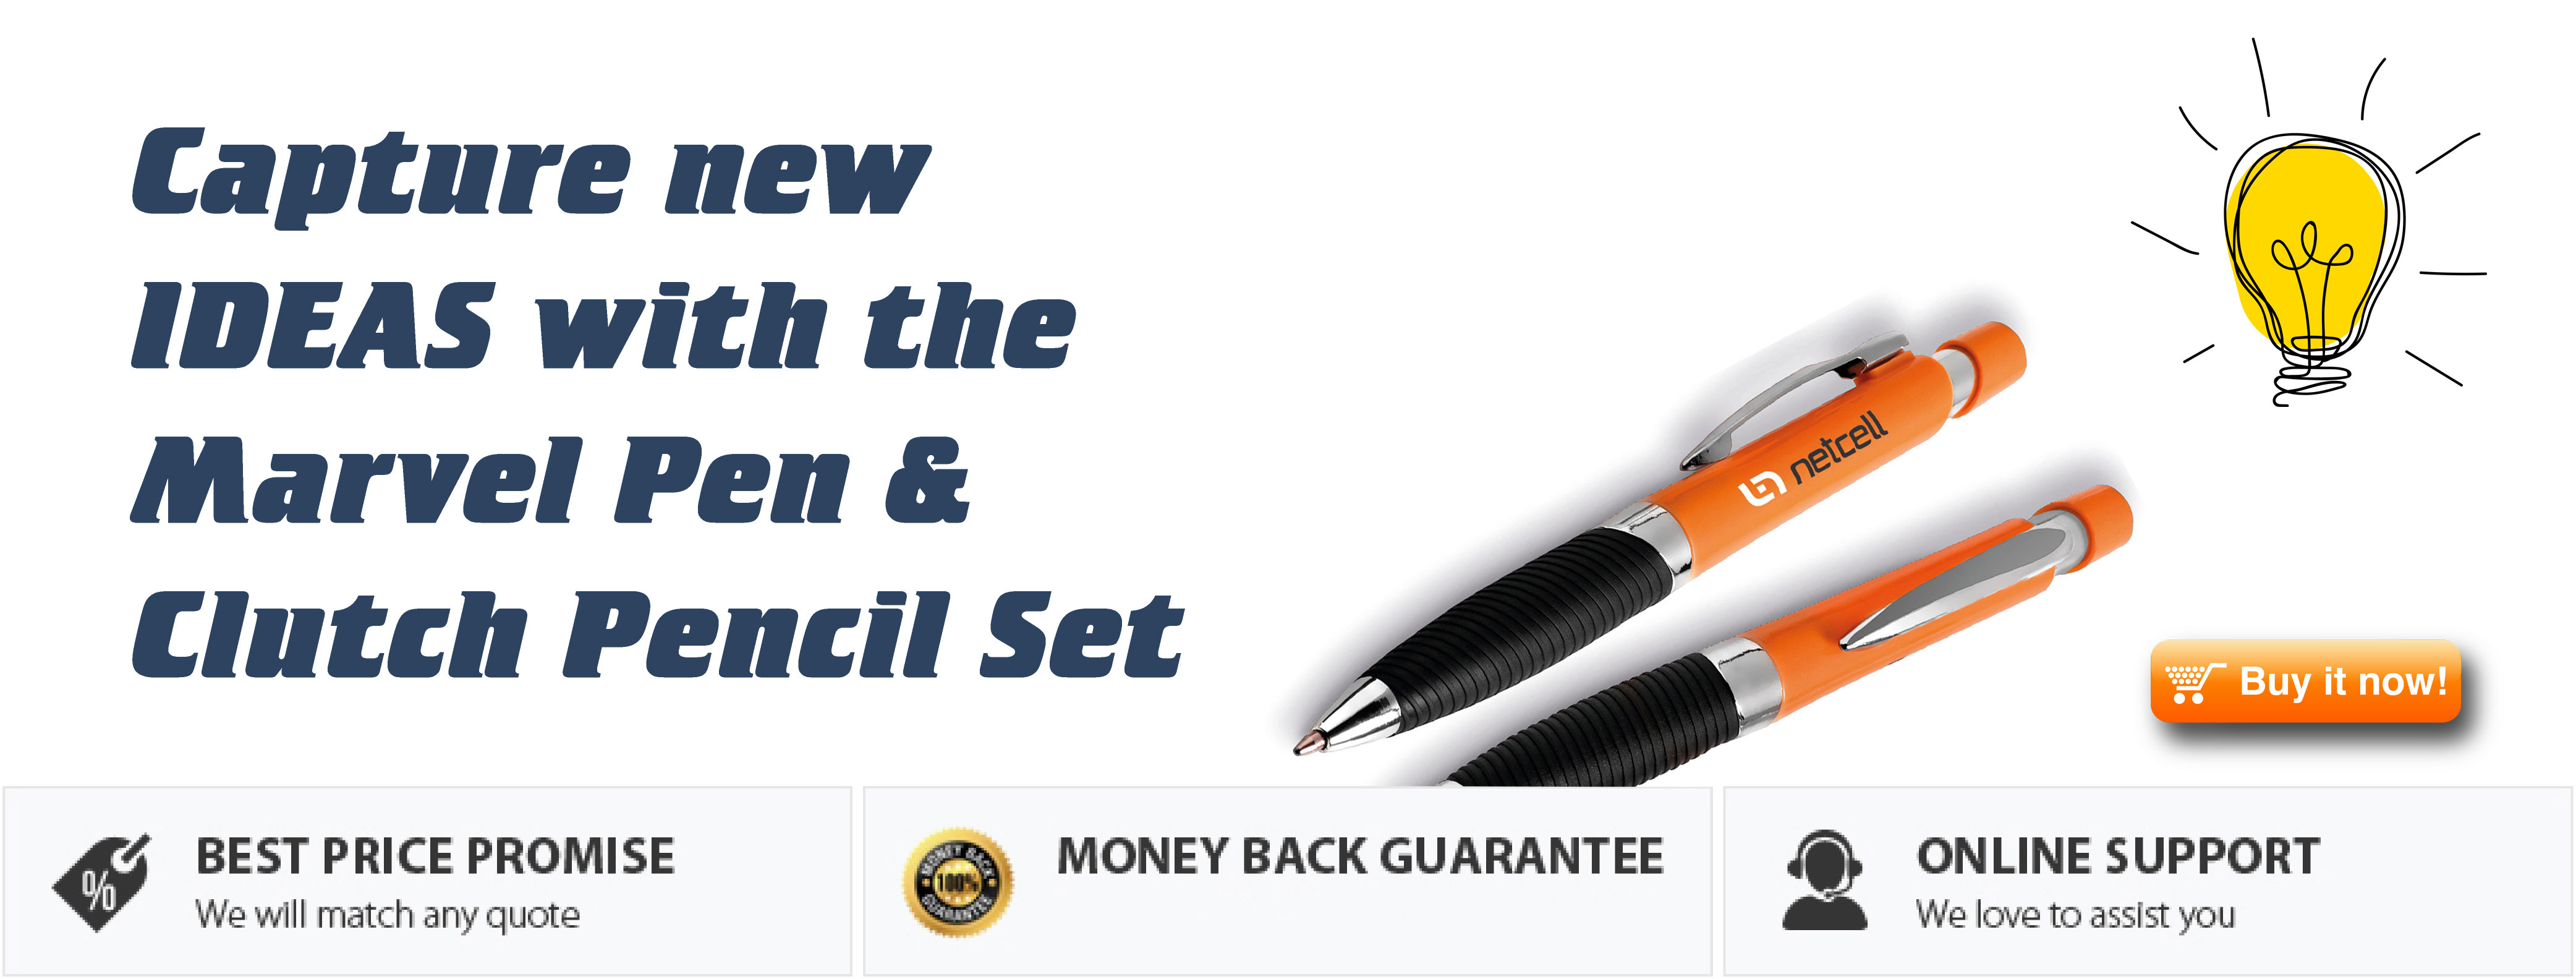 Click Here for the Marvel Ball Pen & Clutch Pencil Set